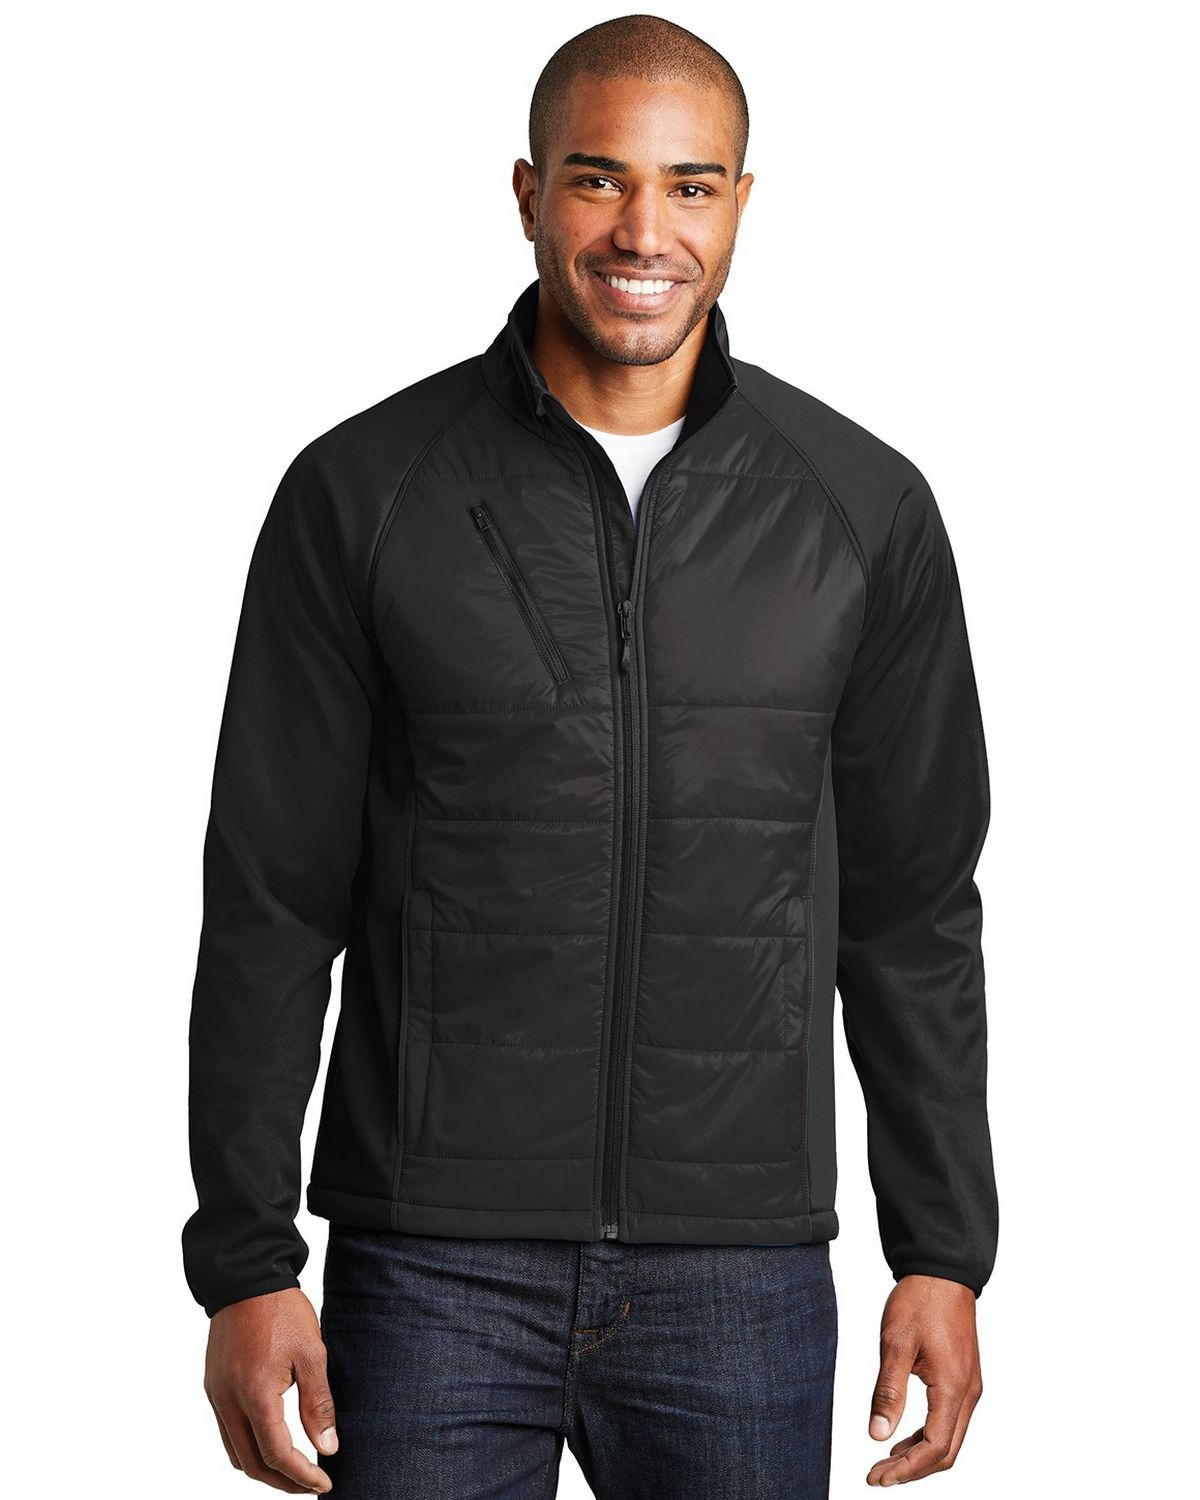 Port Authority J787 Hybrid Soft Shell Jacket